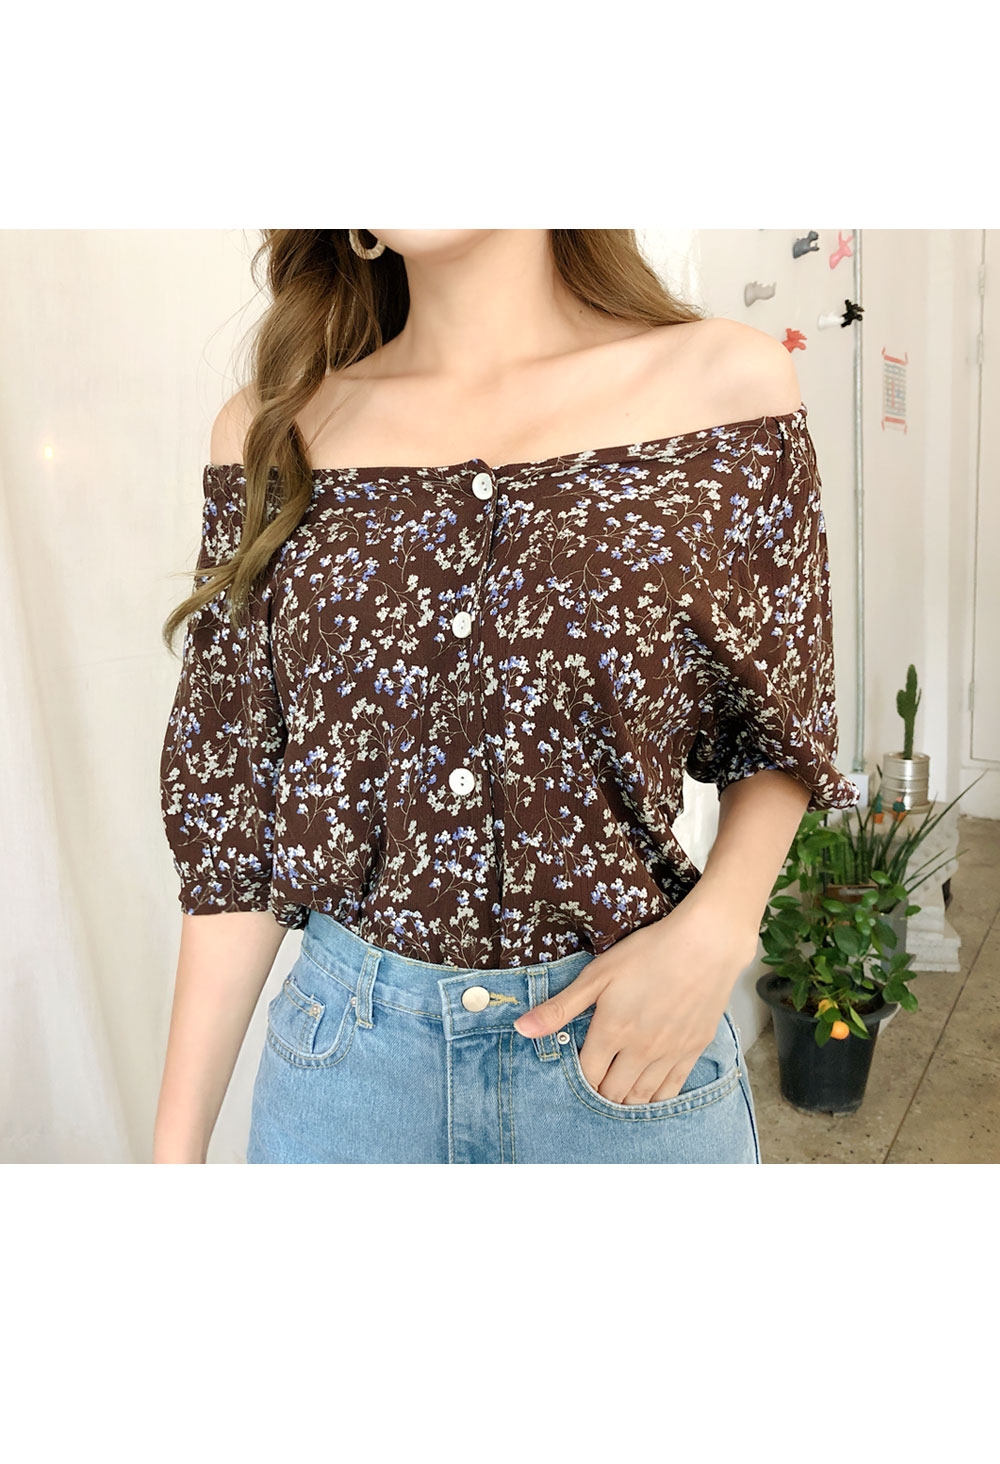 Banded flower blouse